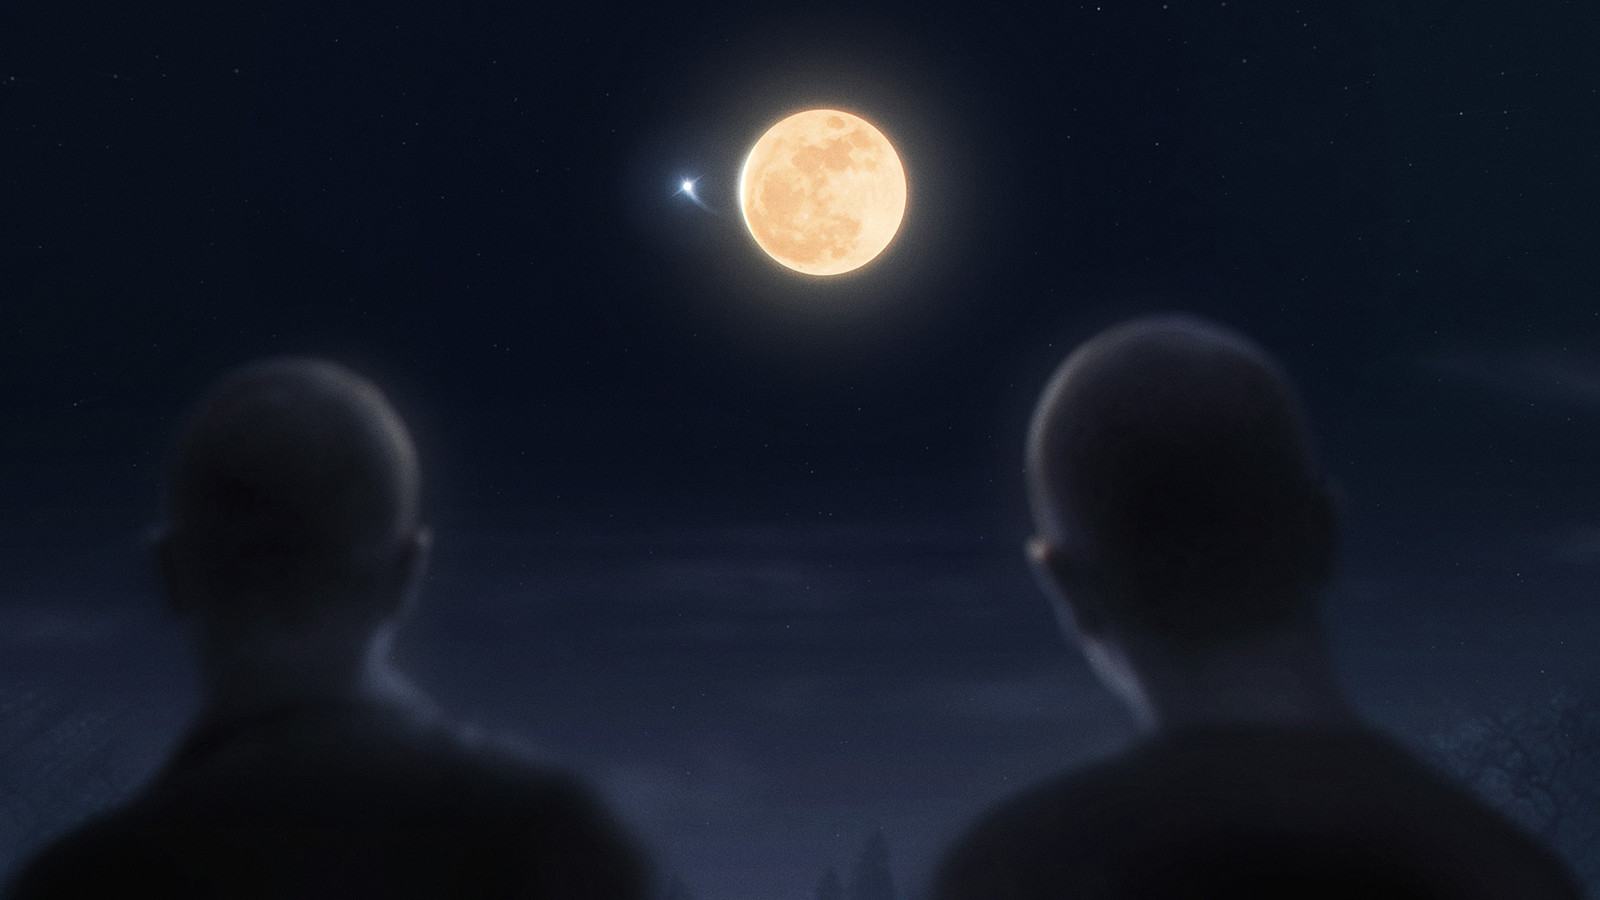 Episode 96: From Behind The Moon It Came.